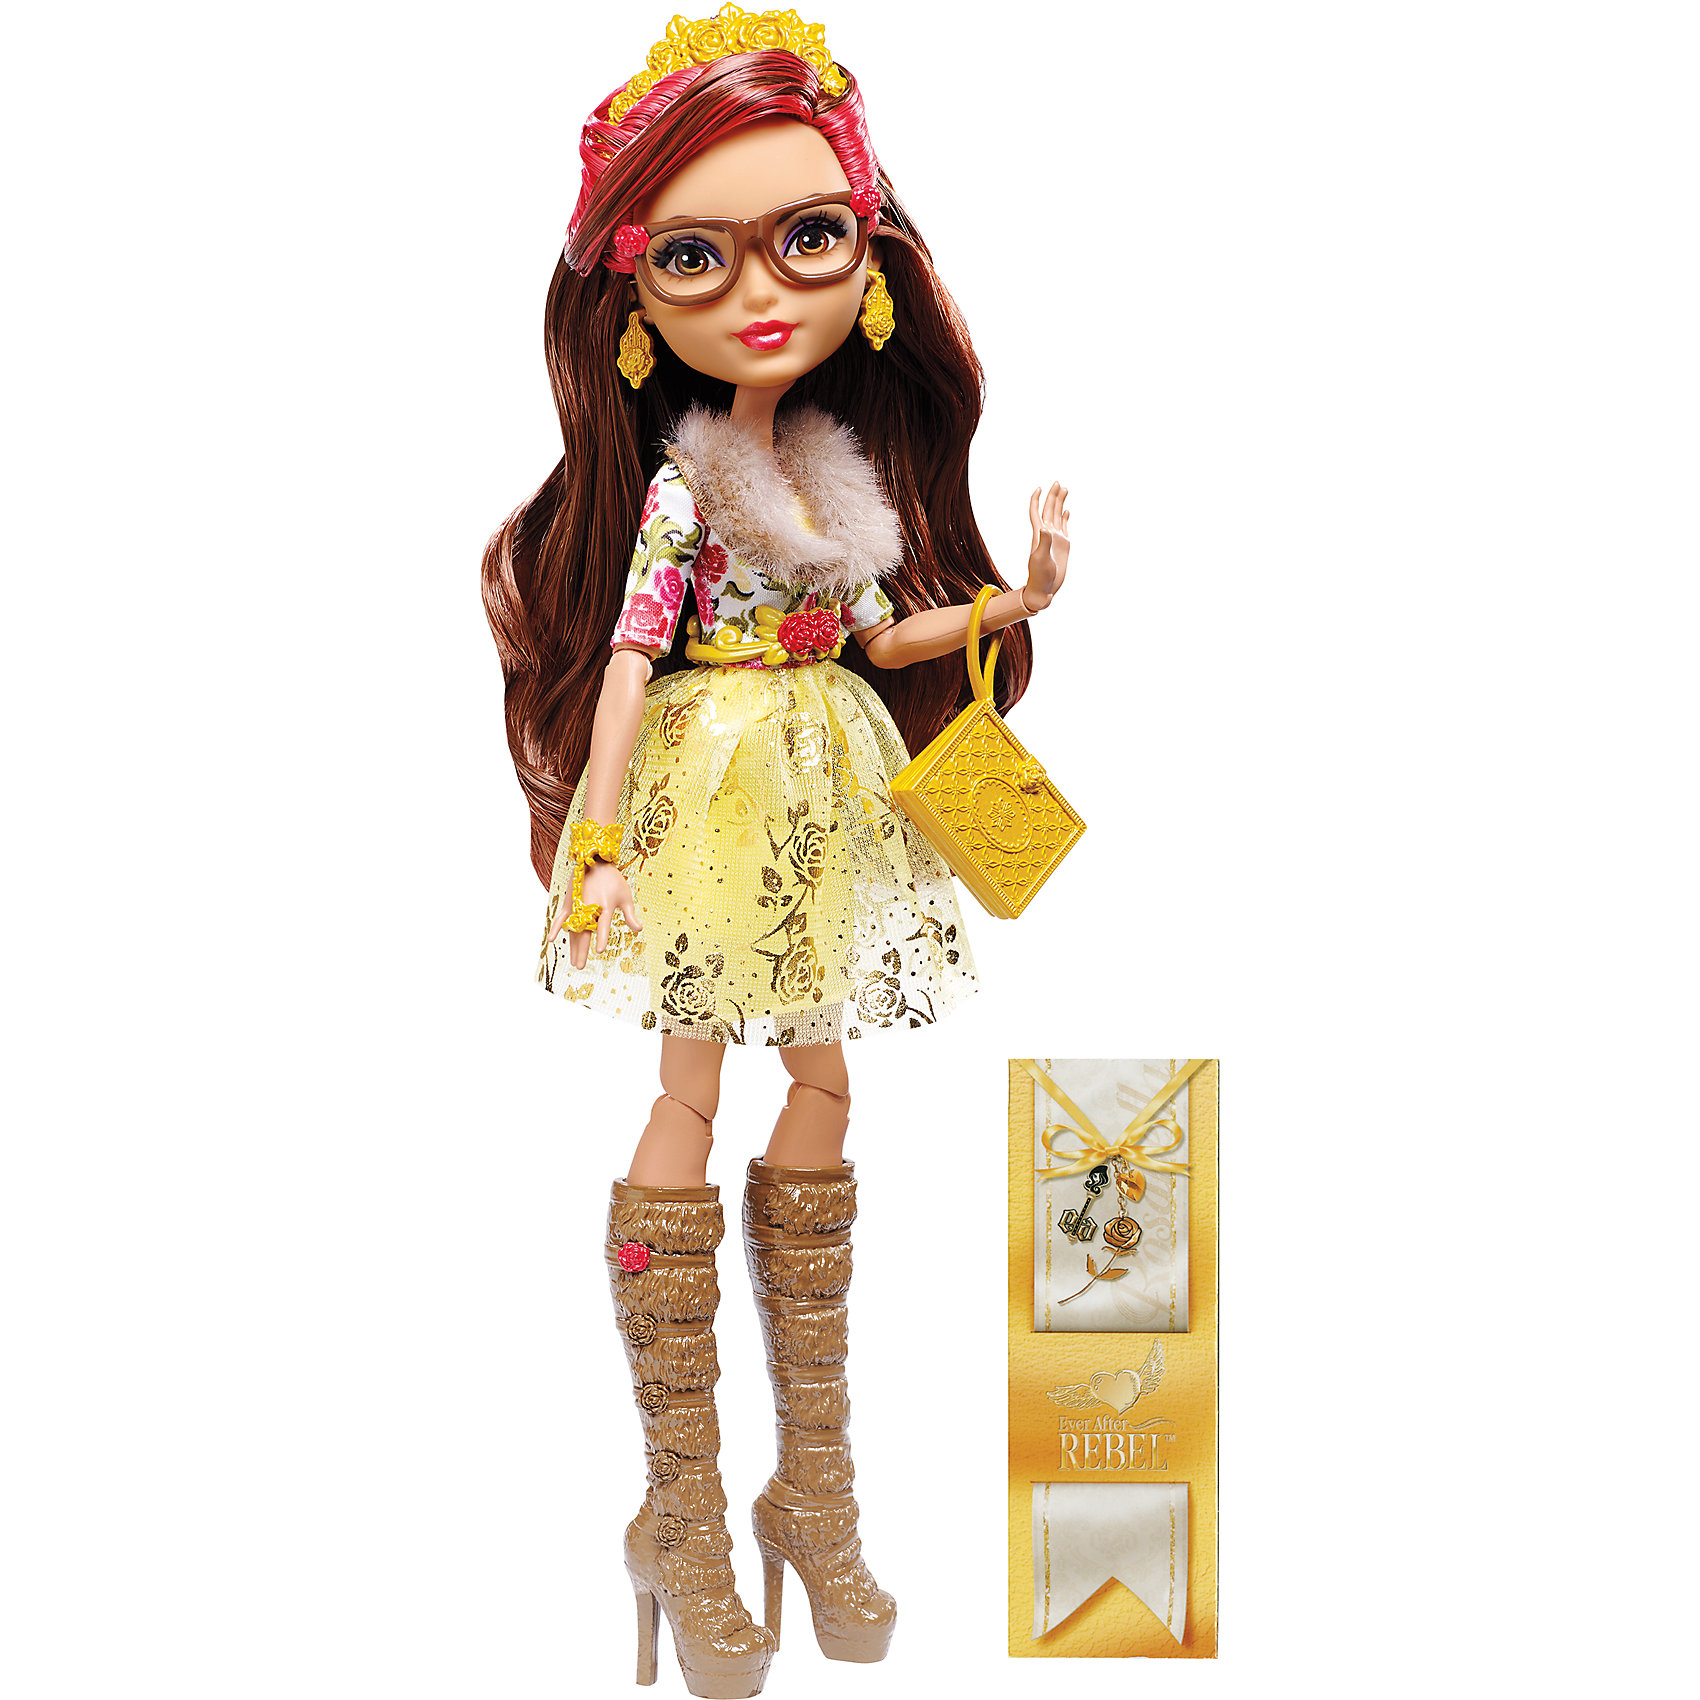 Mattel Кукла Розабелла Бьюти, Ever After High mattel mattel кукла ever after high наследники и отступники банни бланк